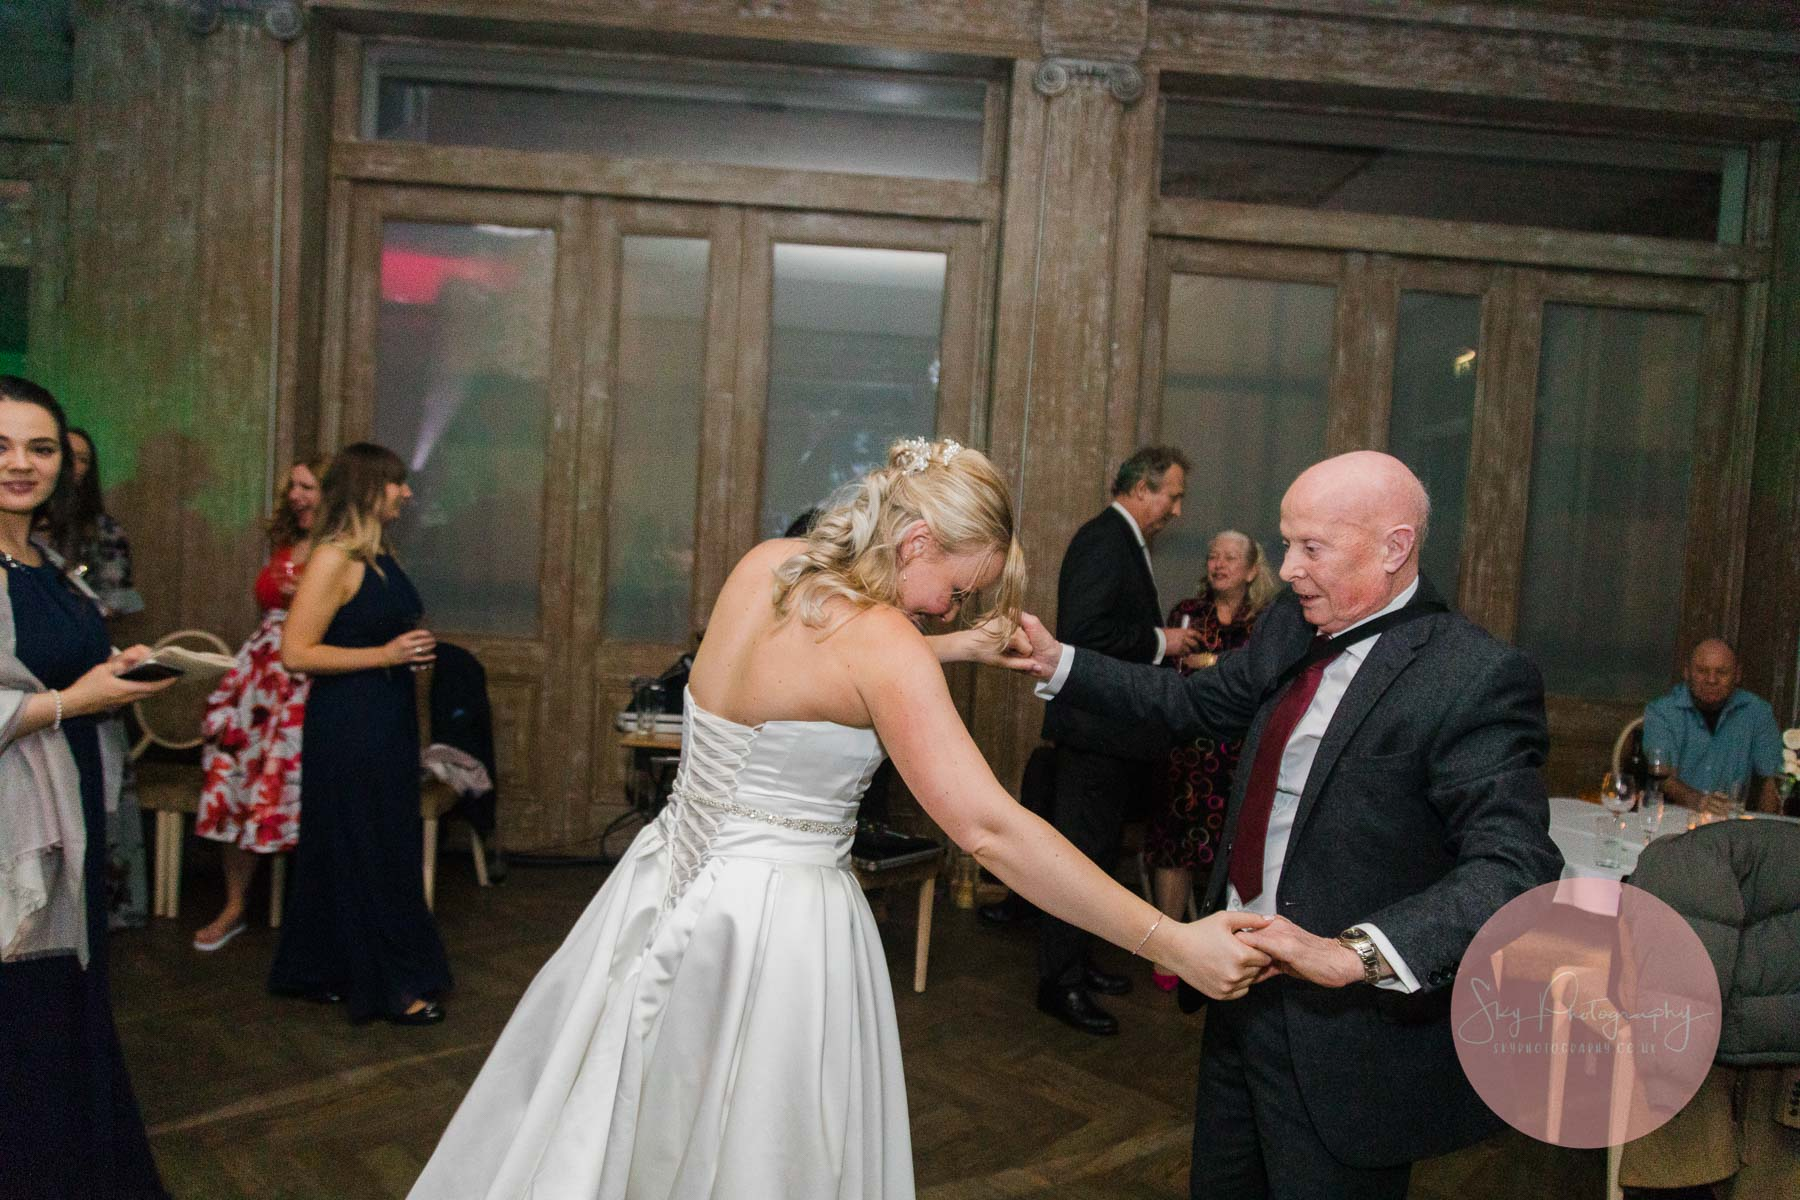 Bride and Grandfather dance next to a band